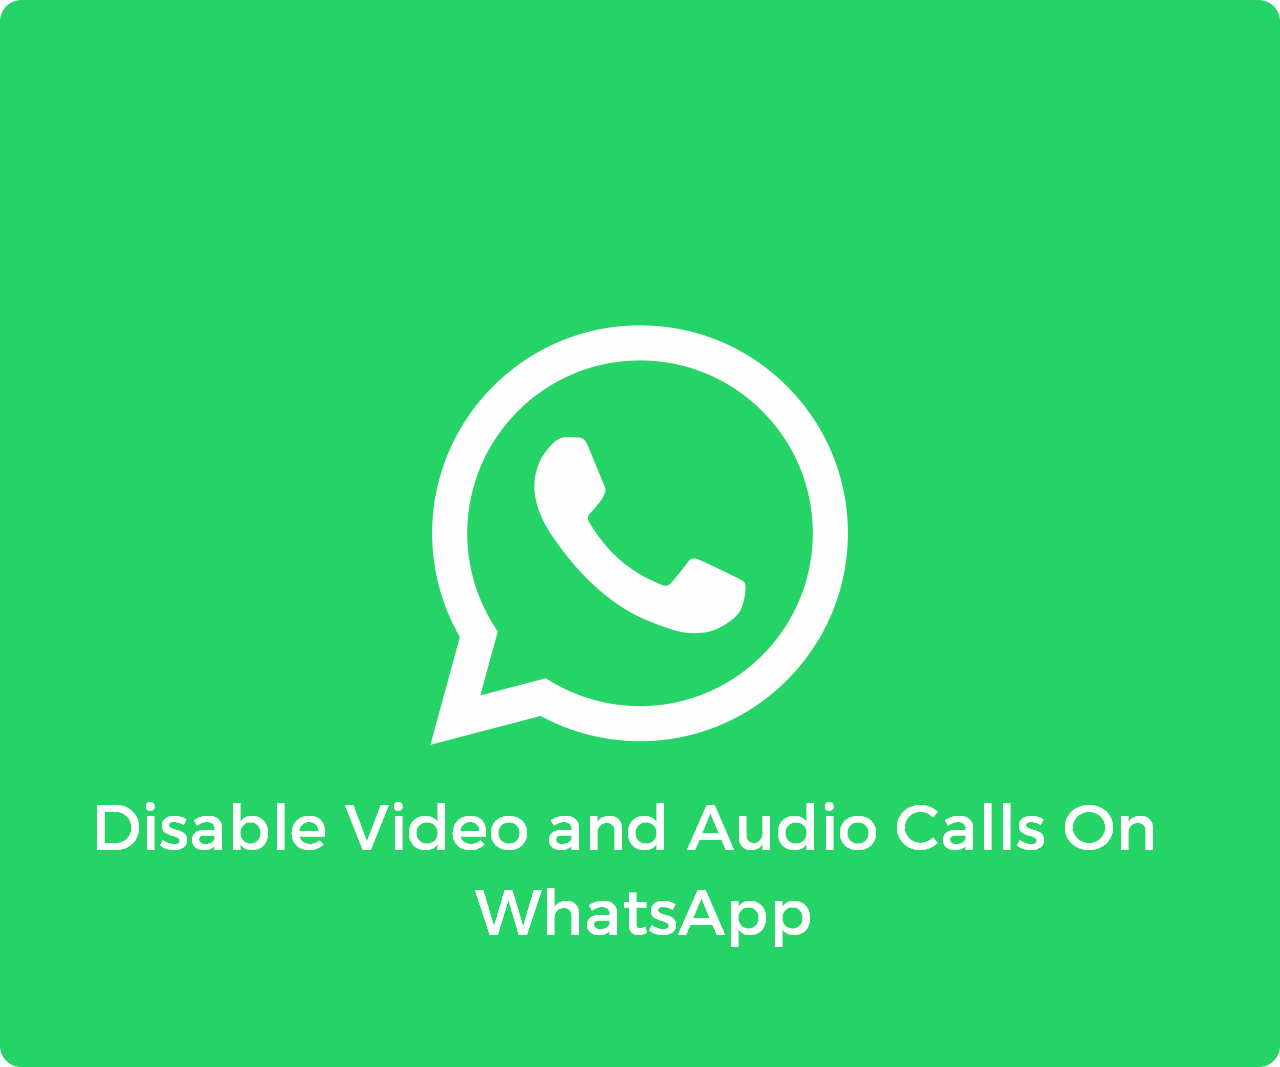 Disable Video and Audio Calls On WhatsApp